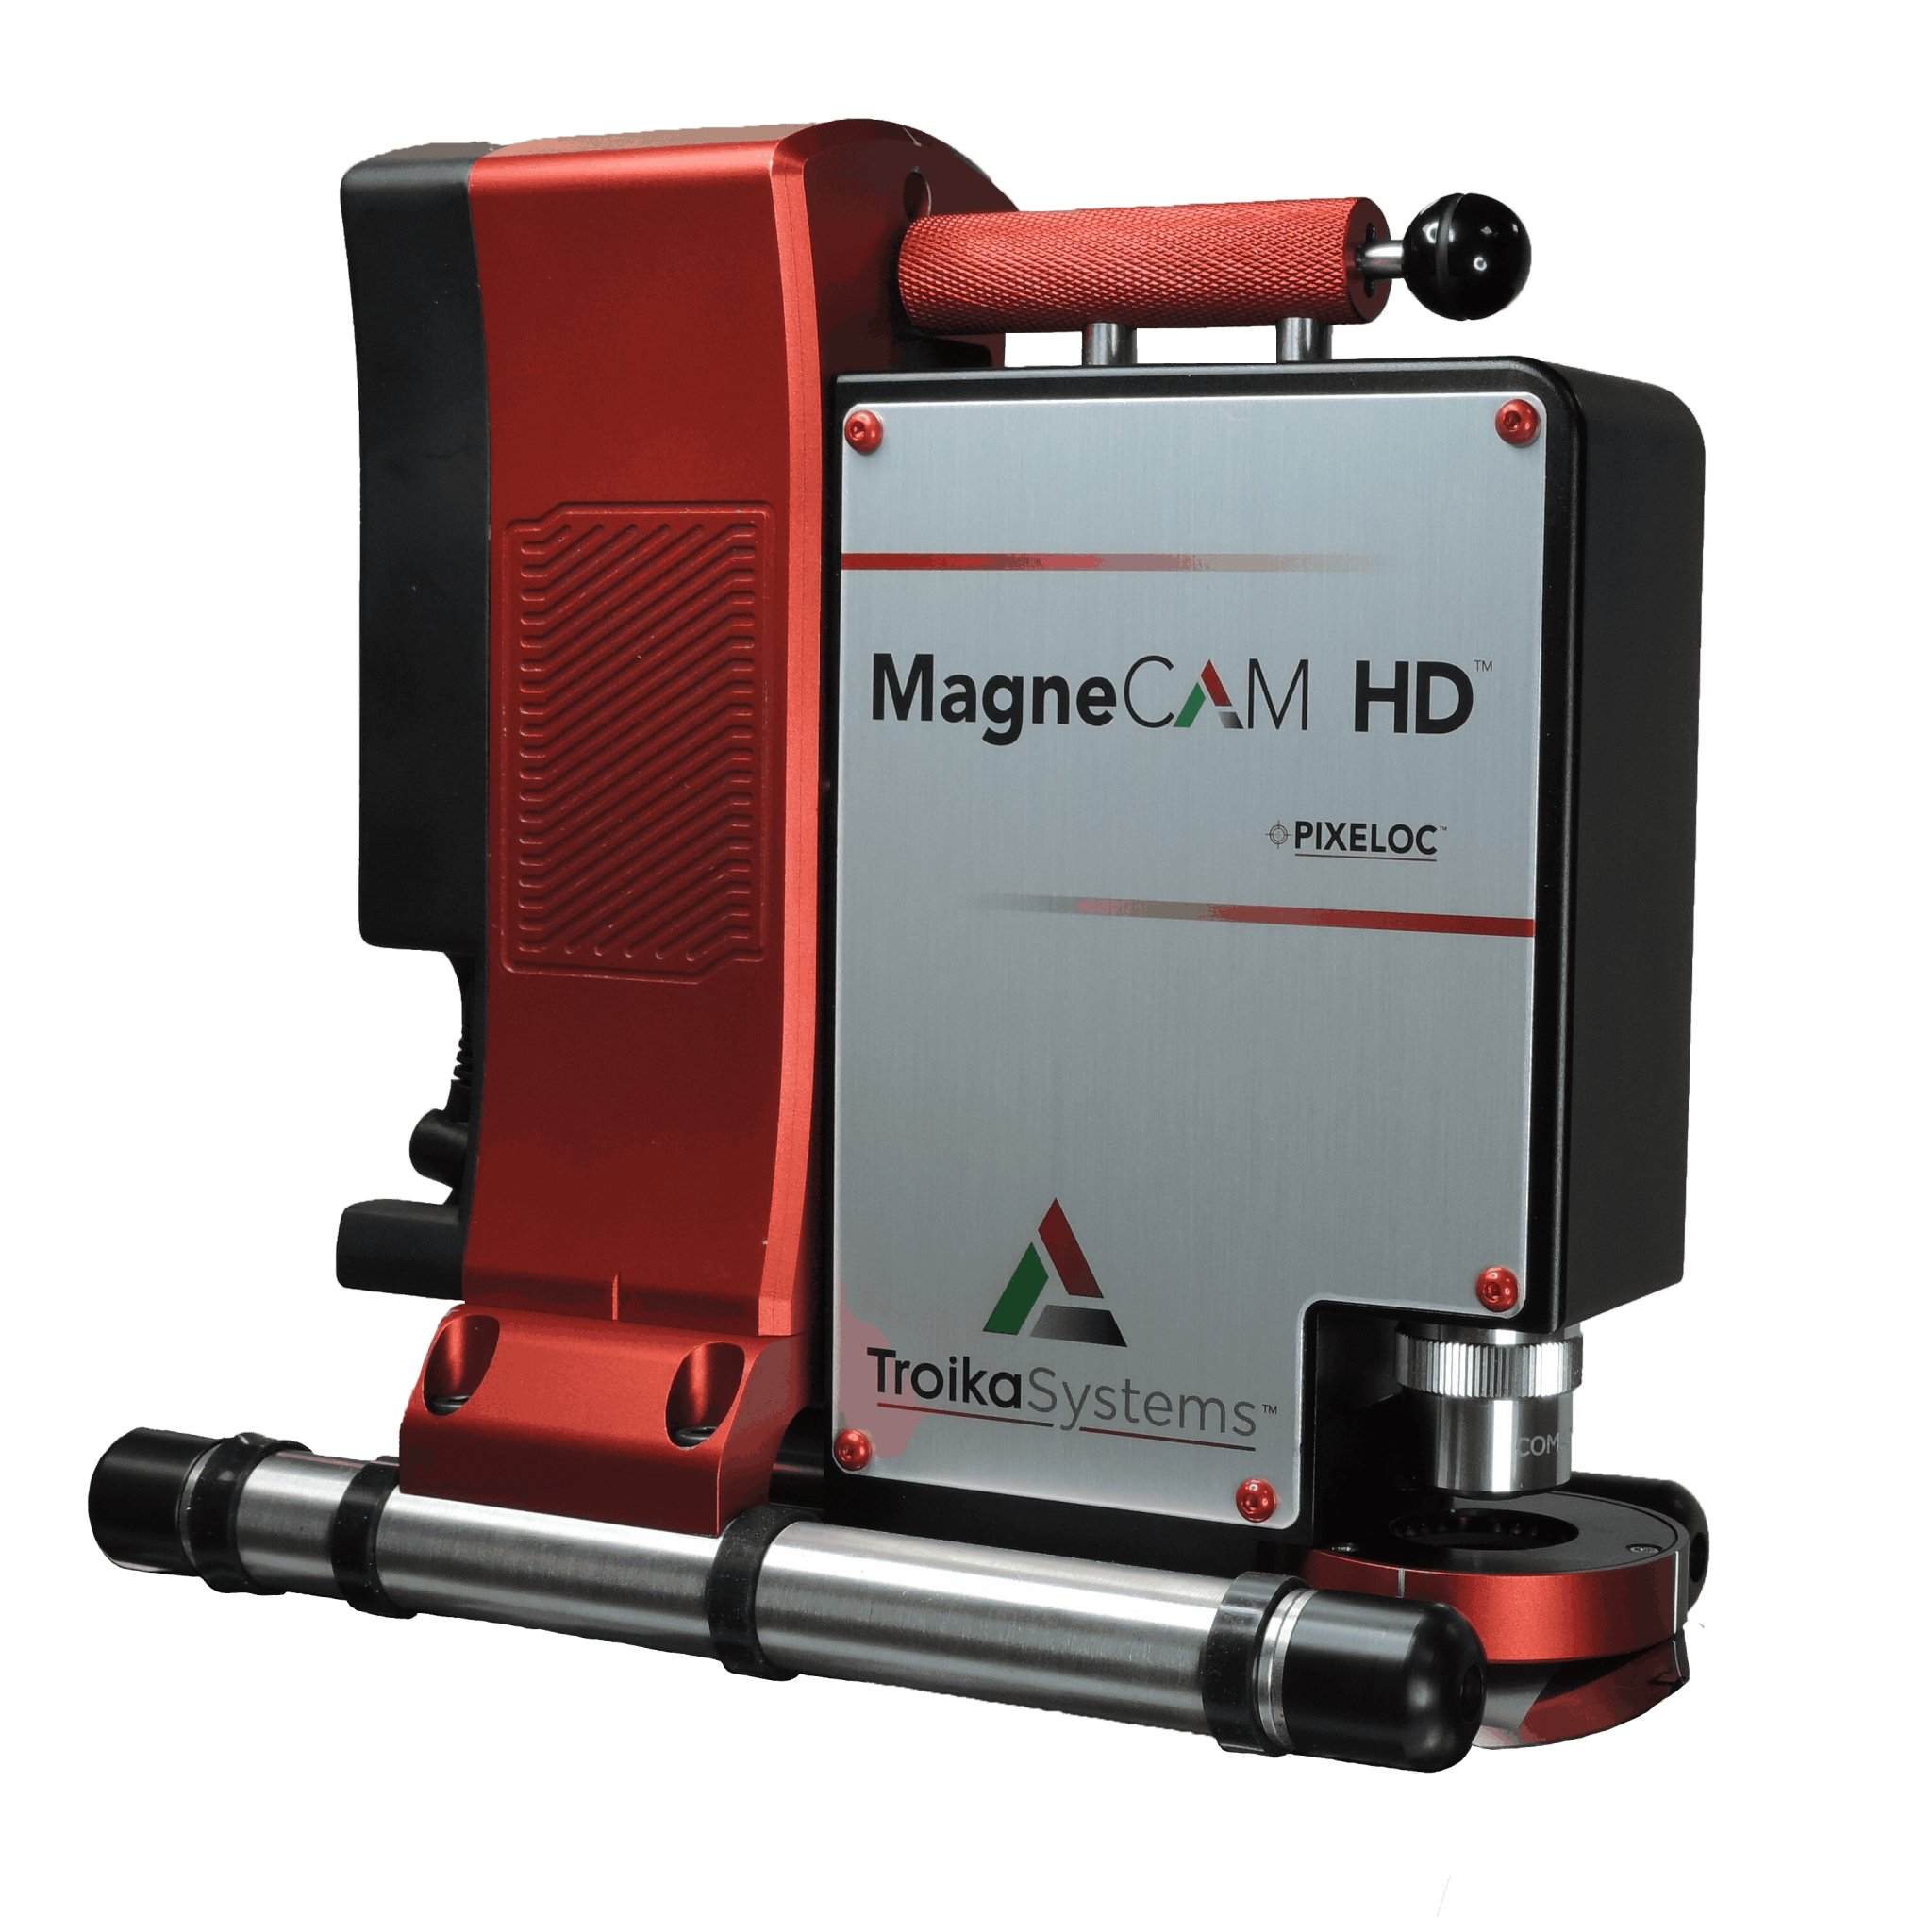 MagneCAM HD on roll on white